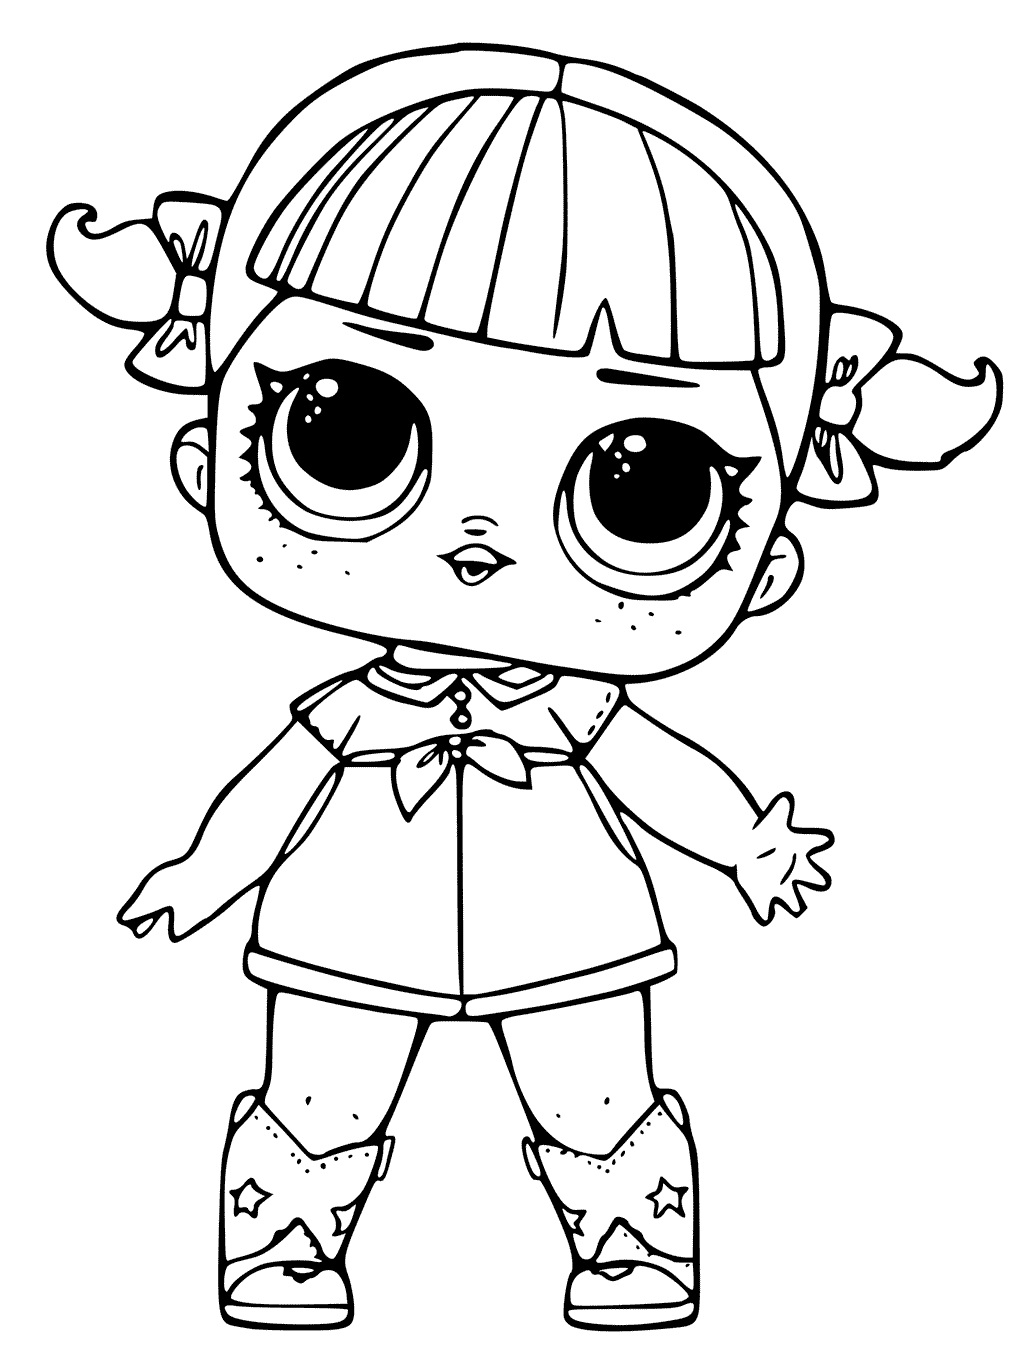 coloring sheets lol lol surprise dolls coloring pages print them for free lol sheets coloring